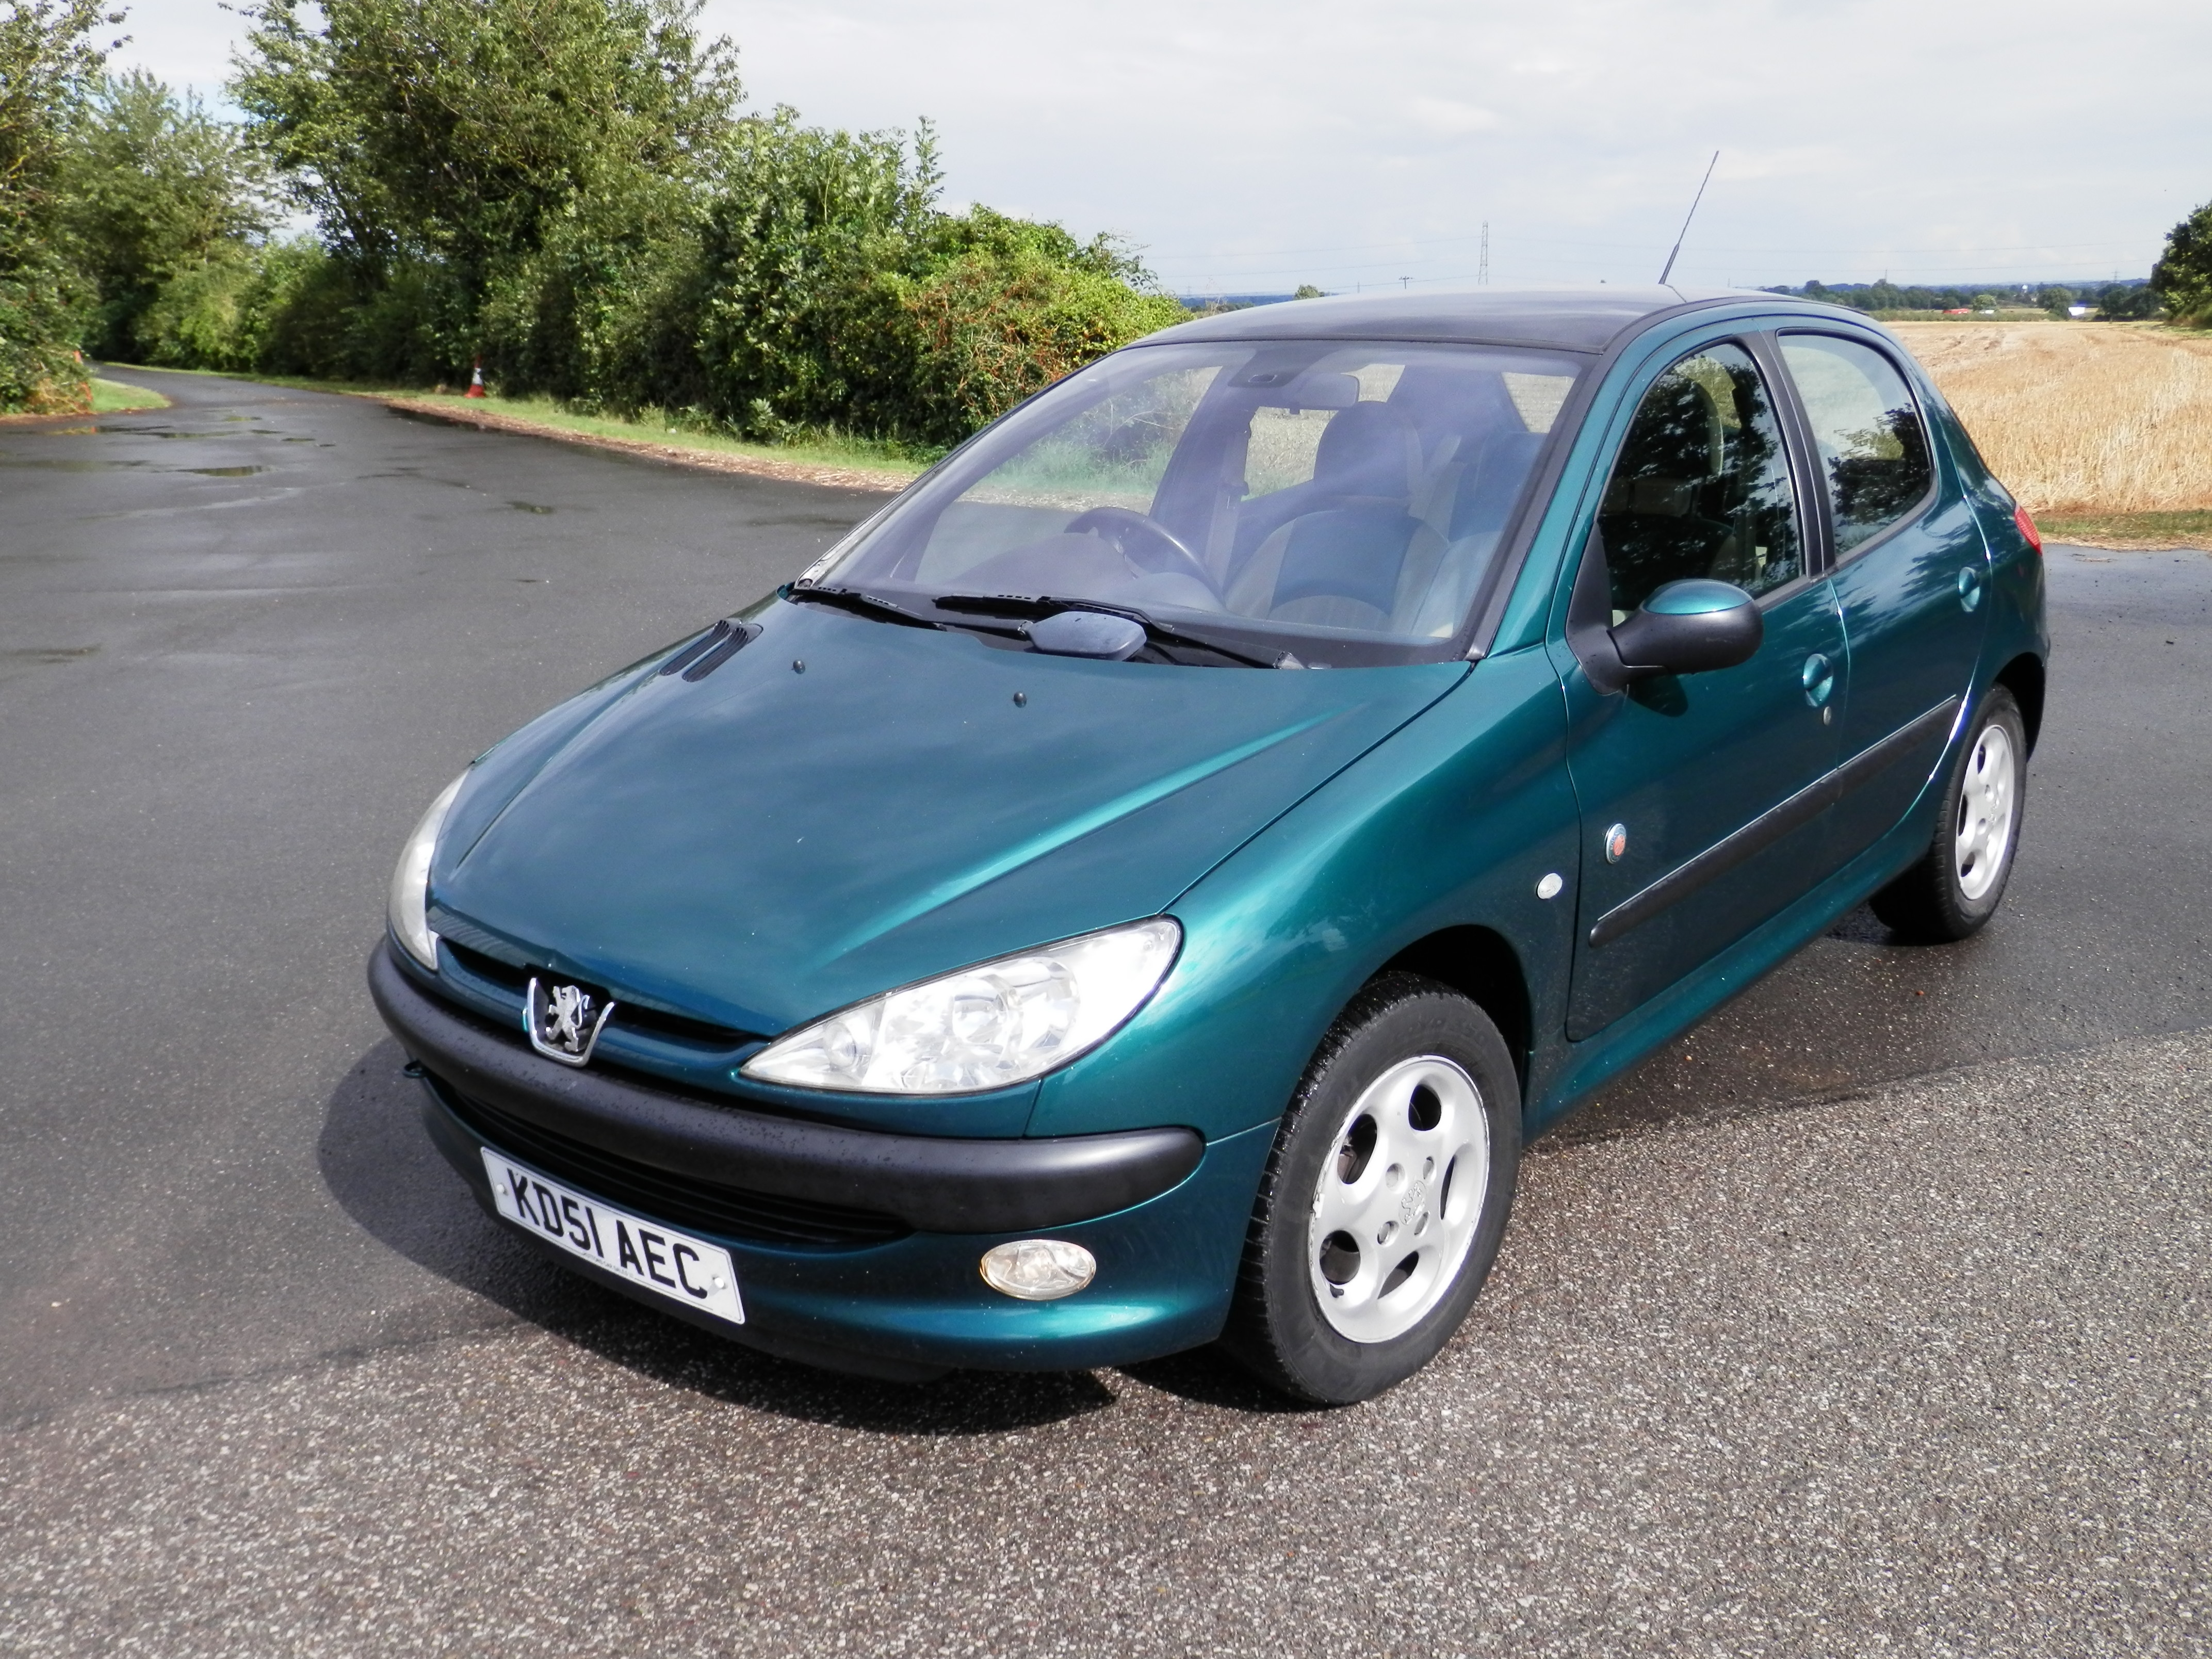 rare 2001 51 reg 5dr peugeot 206 roland garros 1 6 petrol full leather climate panoramic roof. Black Bedroom Furniture Sets. Home Design Ideas